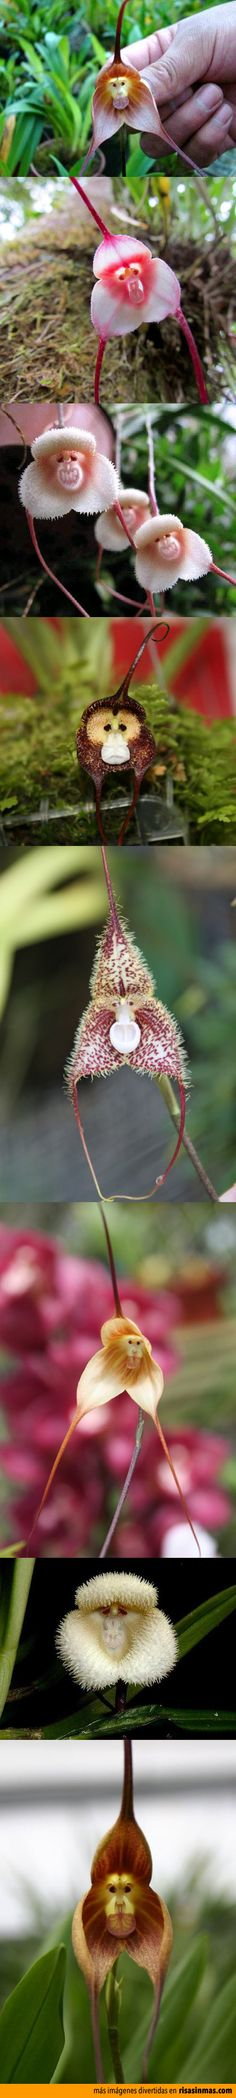 Monkey face orchids